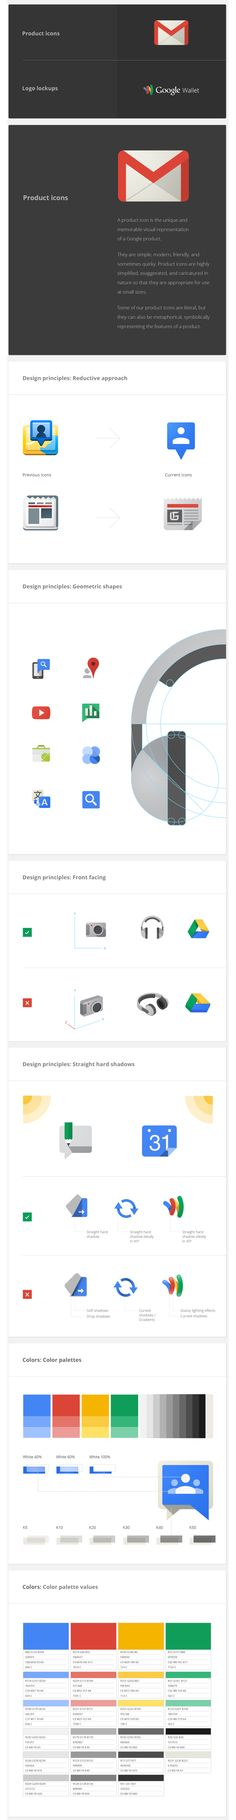 google-artwork